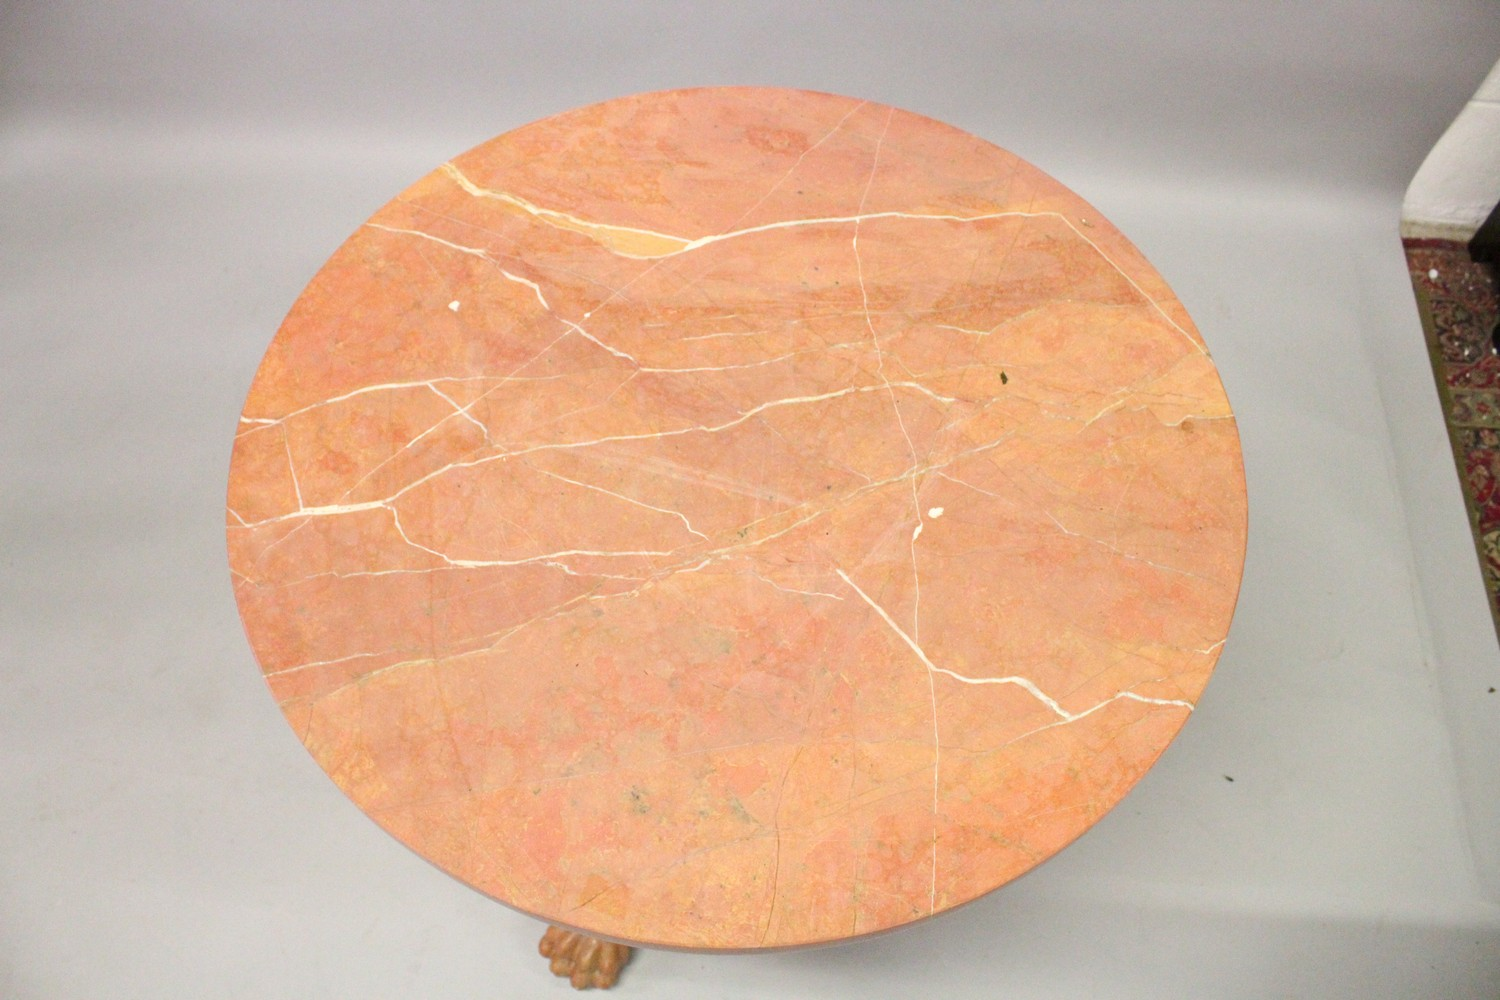 Lot 1022 - A CLASSICAL STYLE PINK VARIEGATED MARBLE CIRCULAR TRIPOD TABLE, with a carved baluster column, three